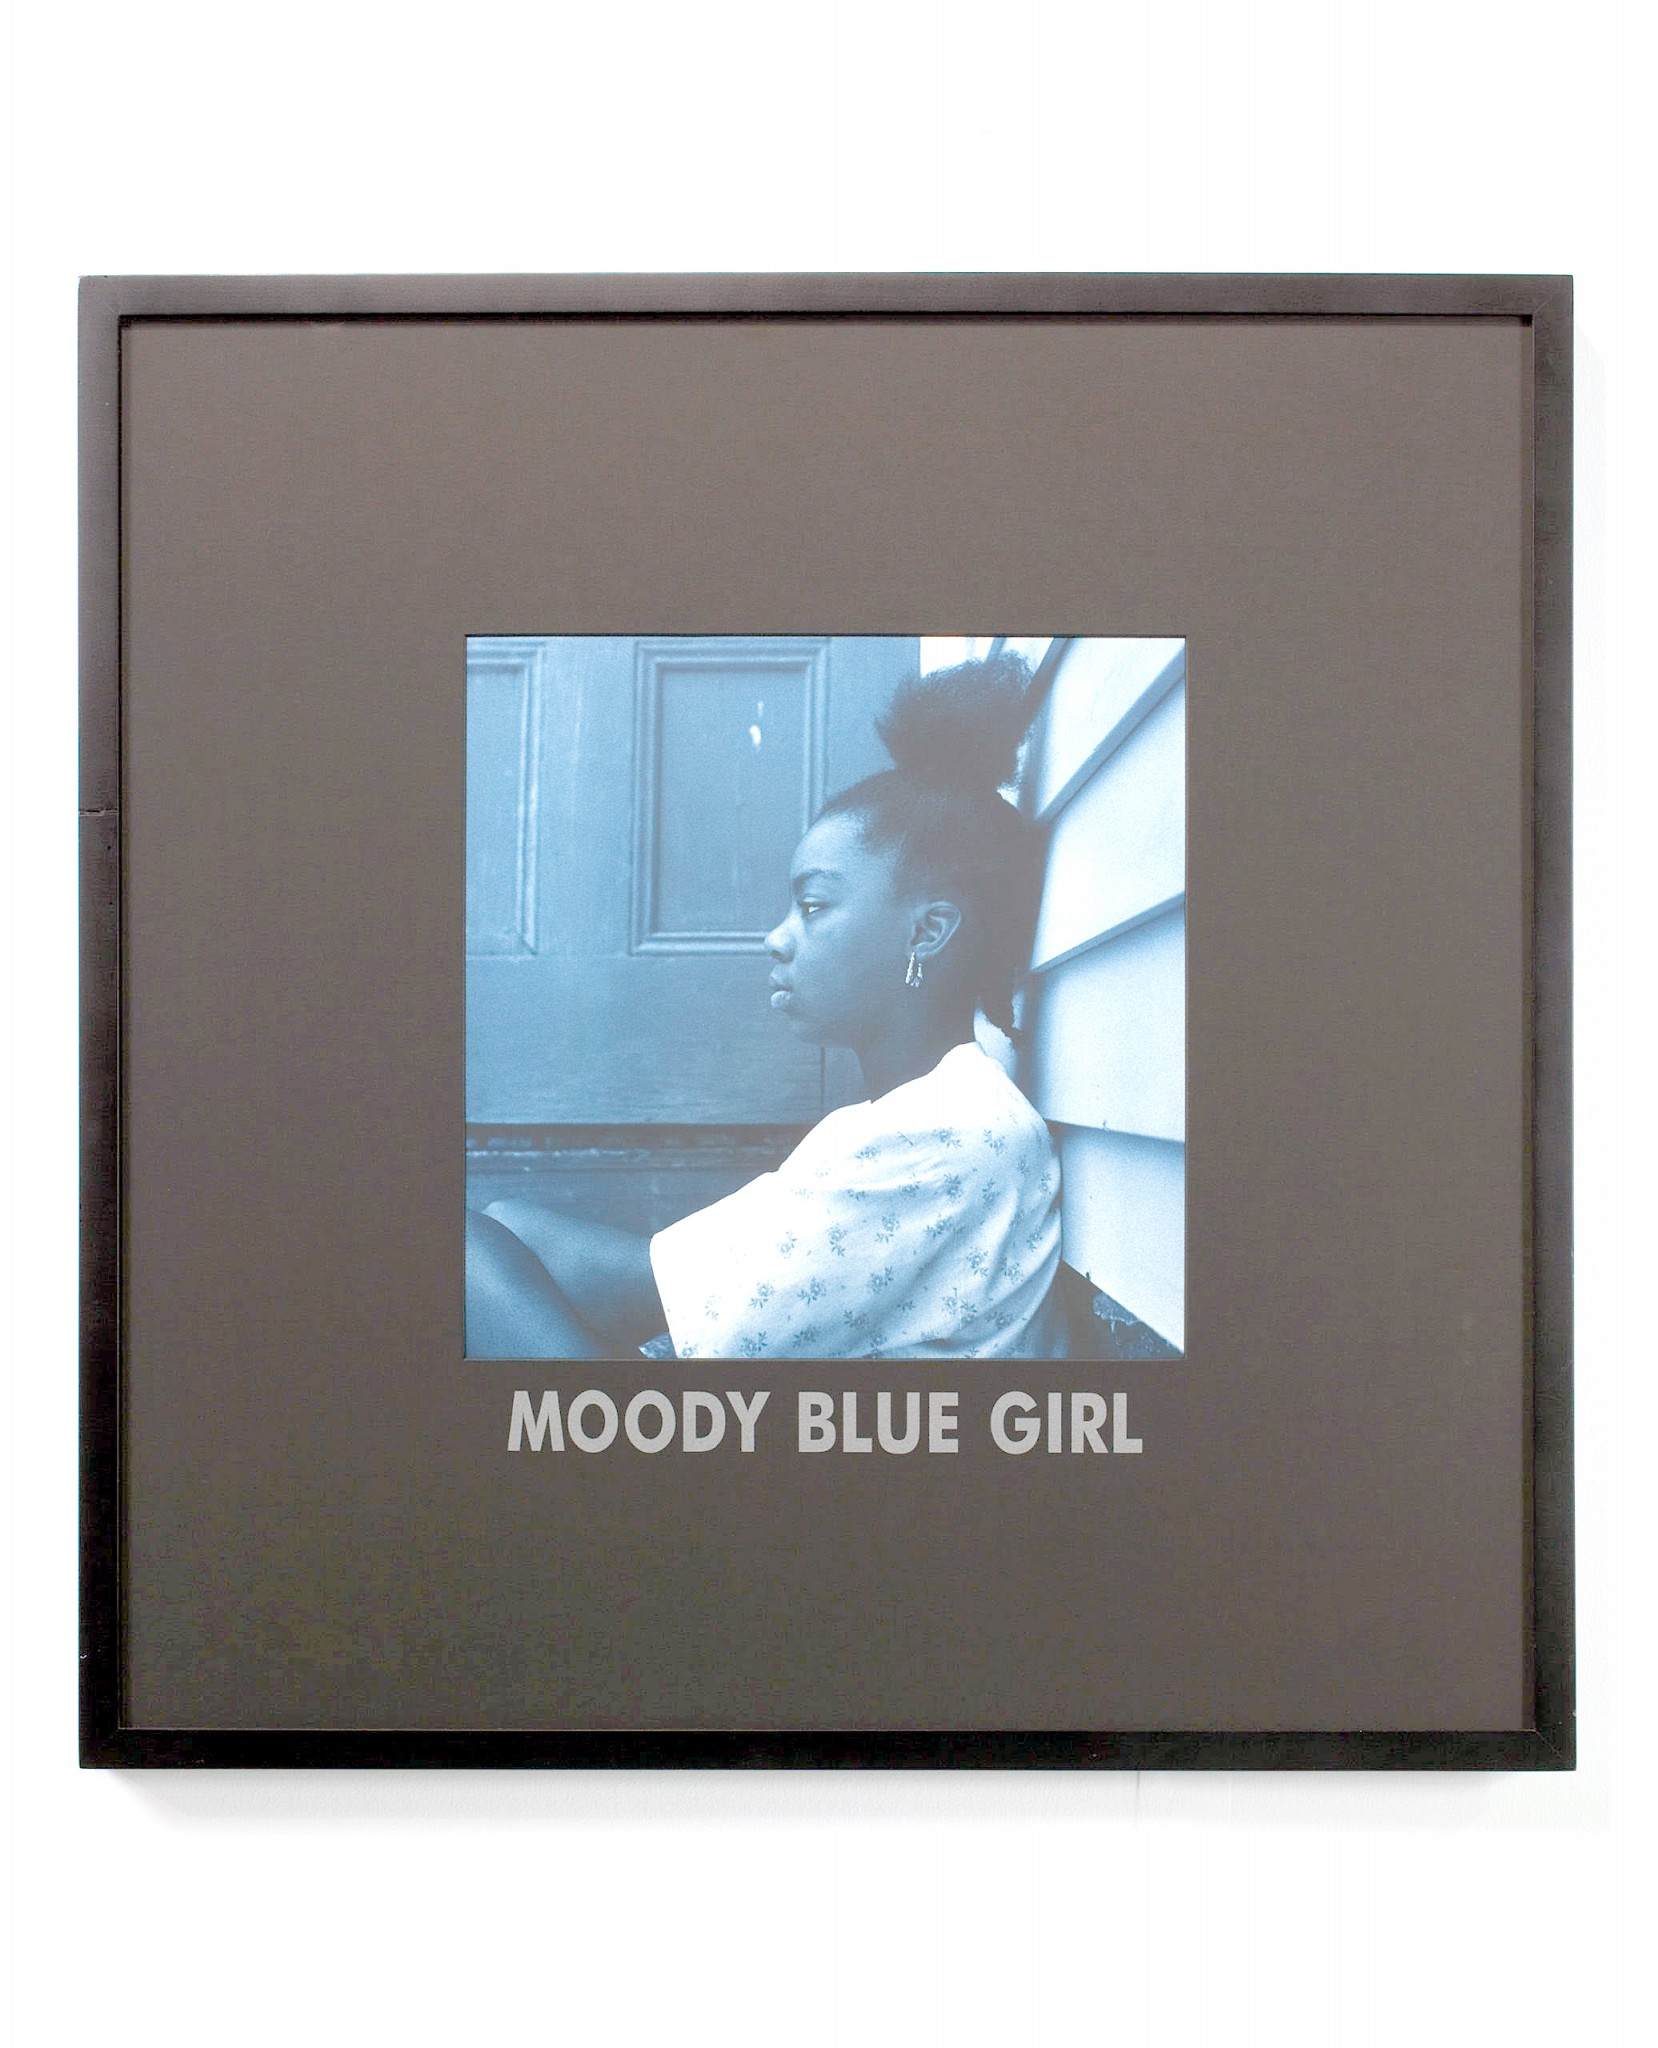 """Carrie Mae Weems' """"Moody Blue Girl"""" is among the work featured in """"PICTURE ID: Contemporary African American Works on Paper"""" on exhibit at the Toledo Museum of Art through Jan. 17, 2021. (Photo courtesy of the Toledo Museum of Art)"""